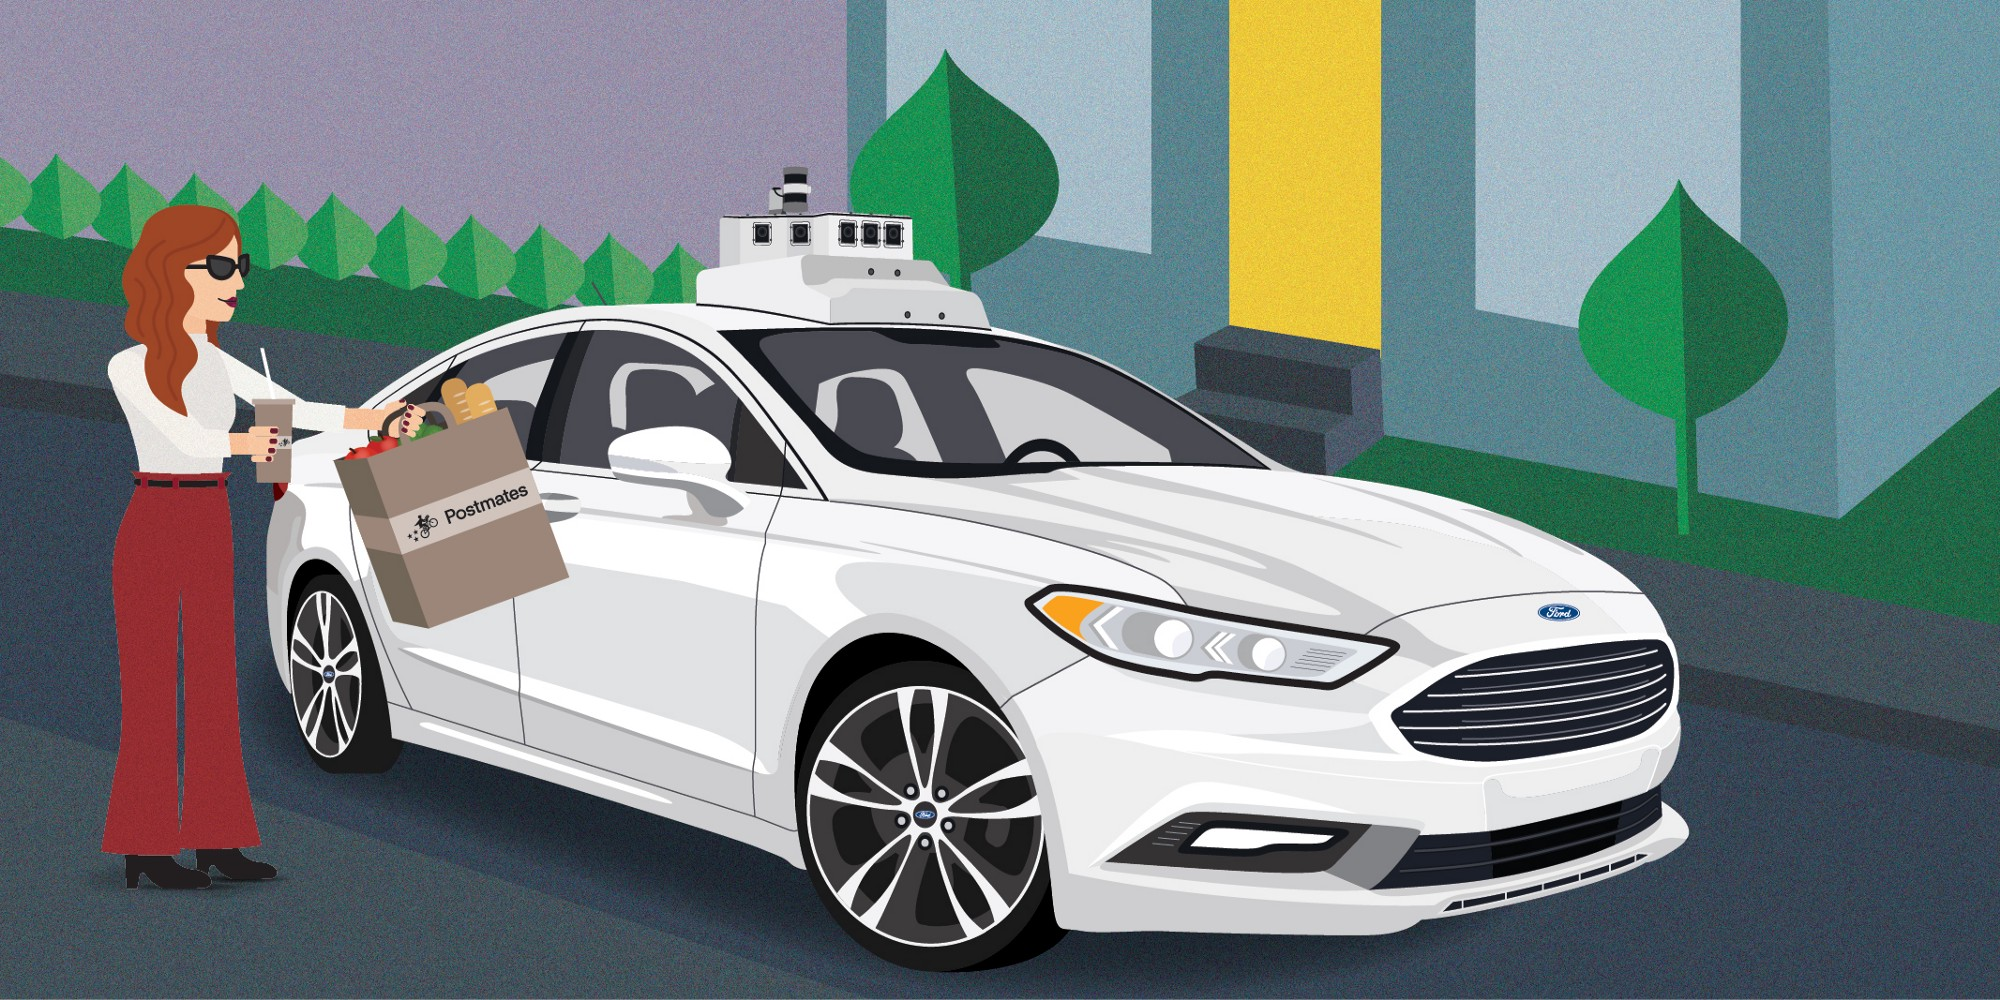 Ford and Postmates Will Test Autonomous Delivery Vehicles